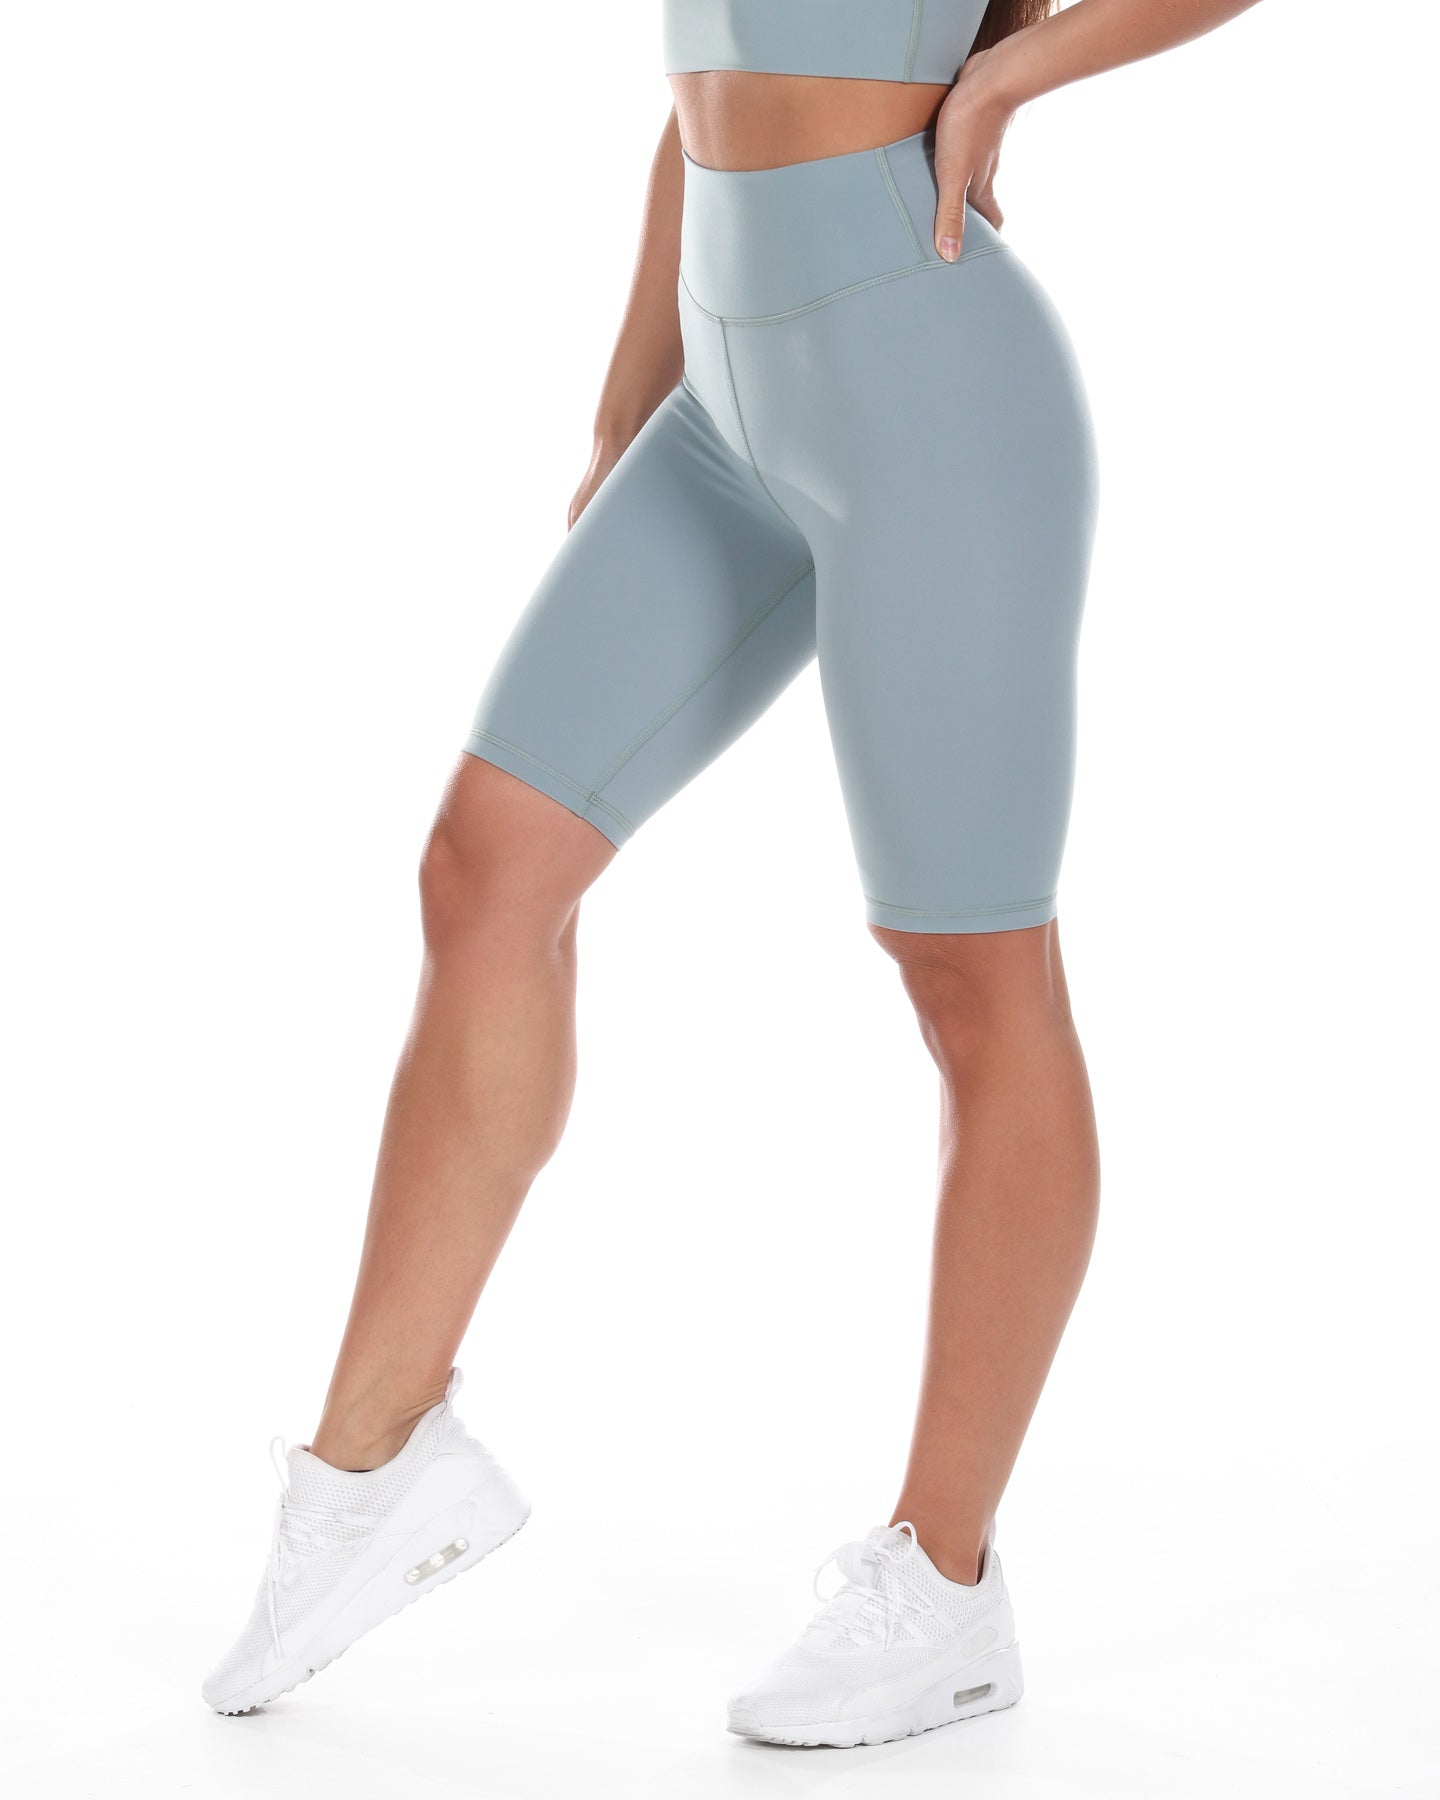 Aura Bike Shorts - Pale Sage